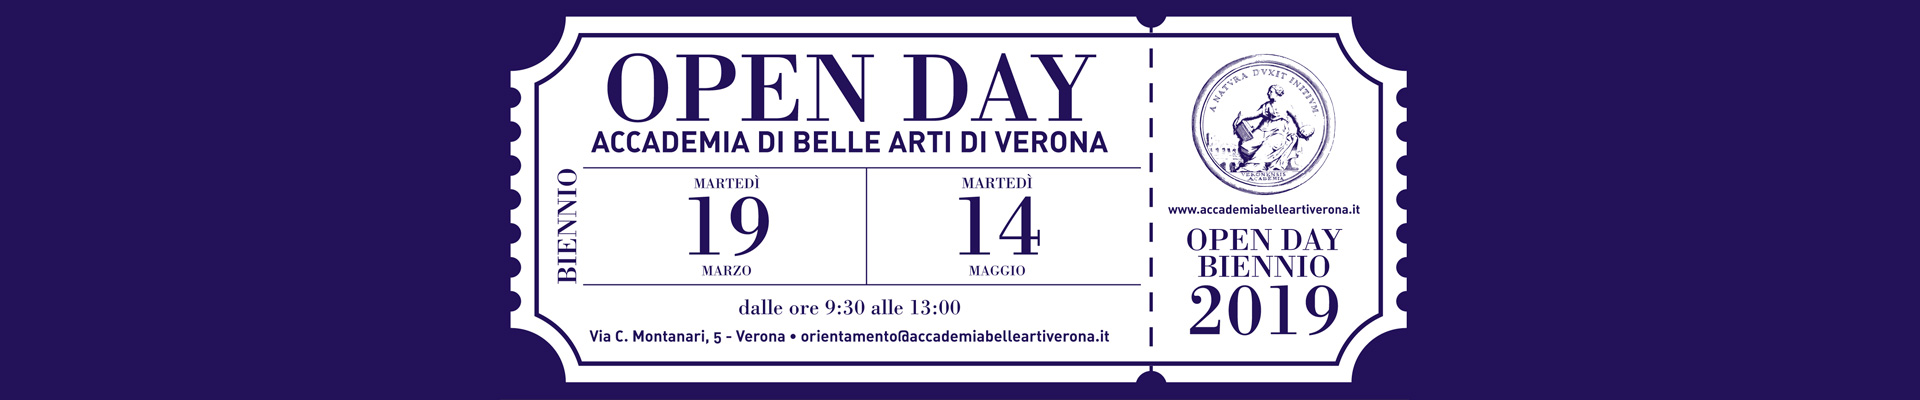 OPEN-DAY-BIENNIO-2